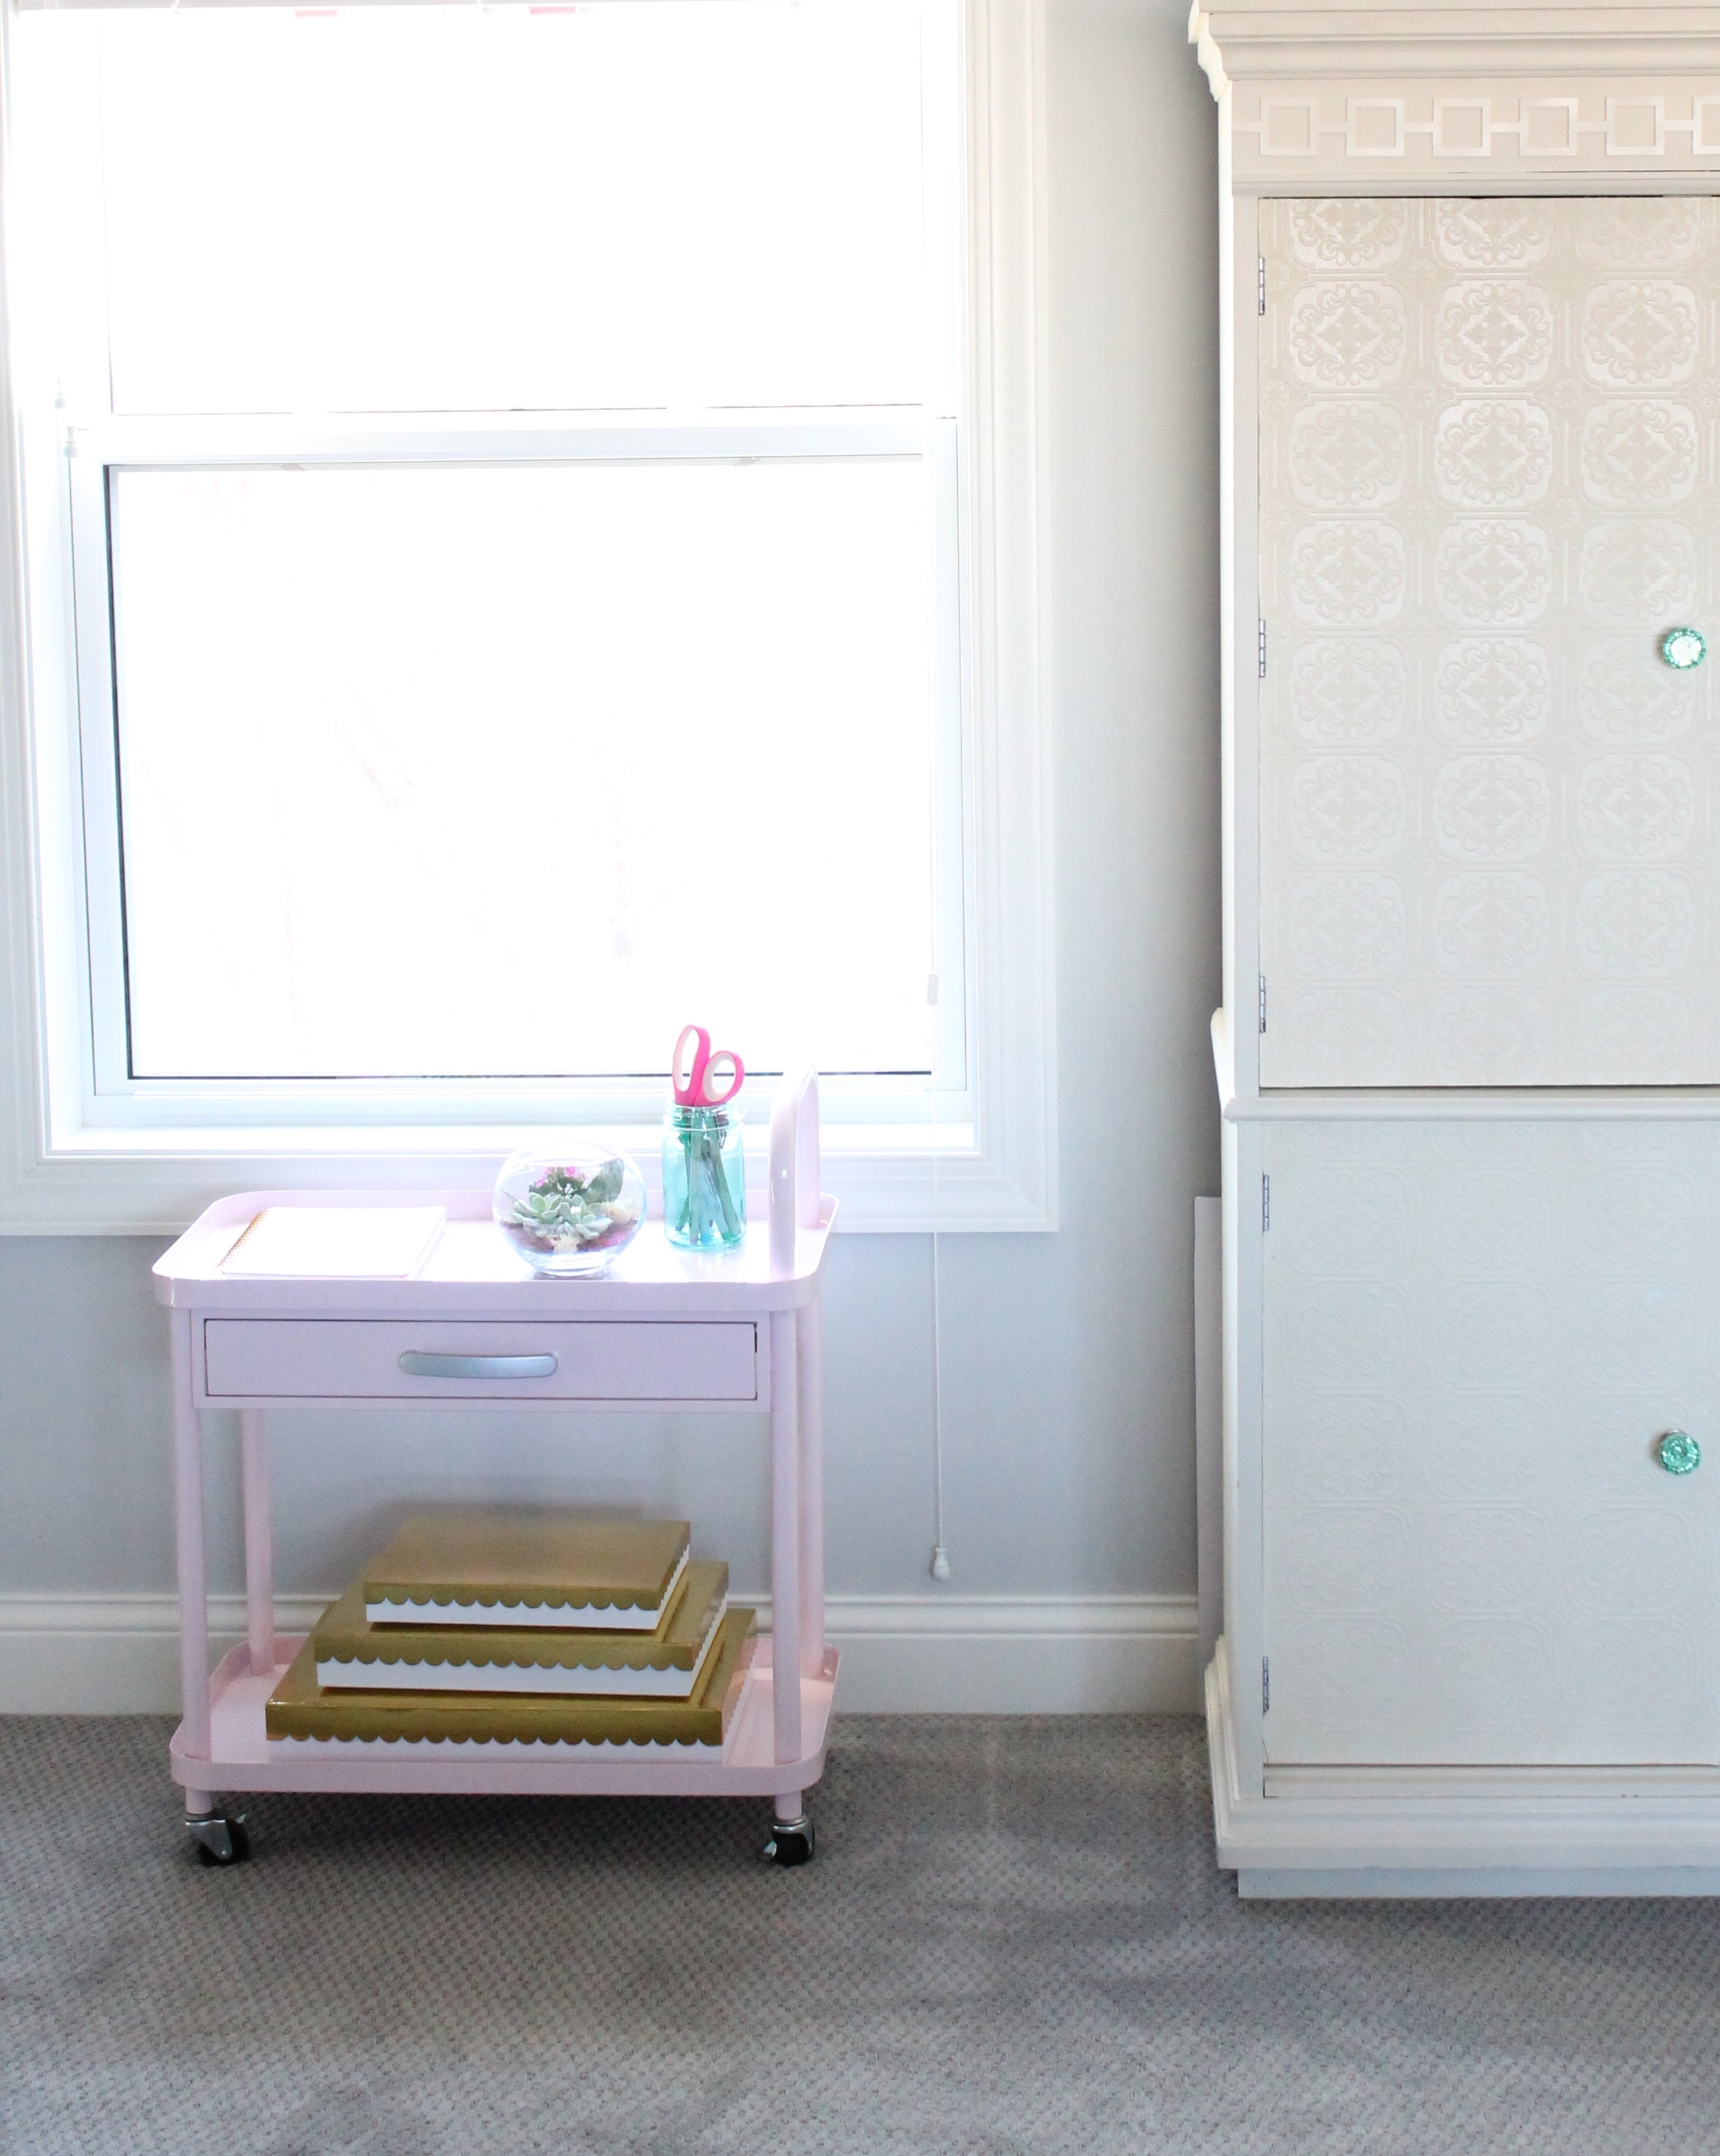 Adorable pink rolling cart in this family craft room.